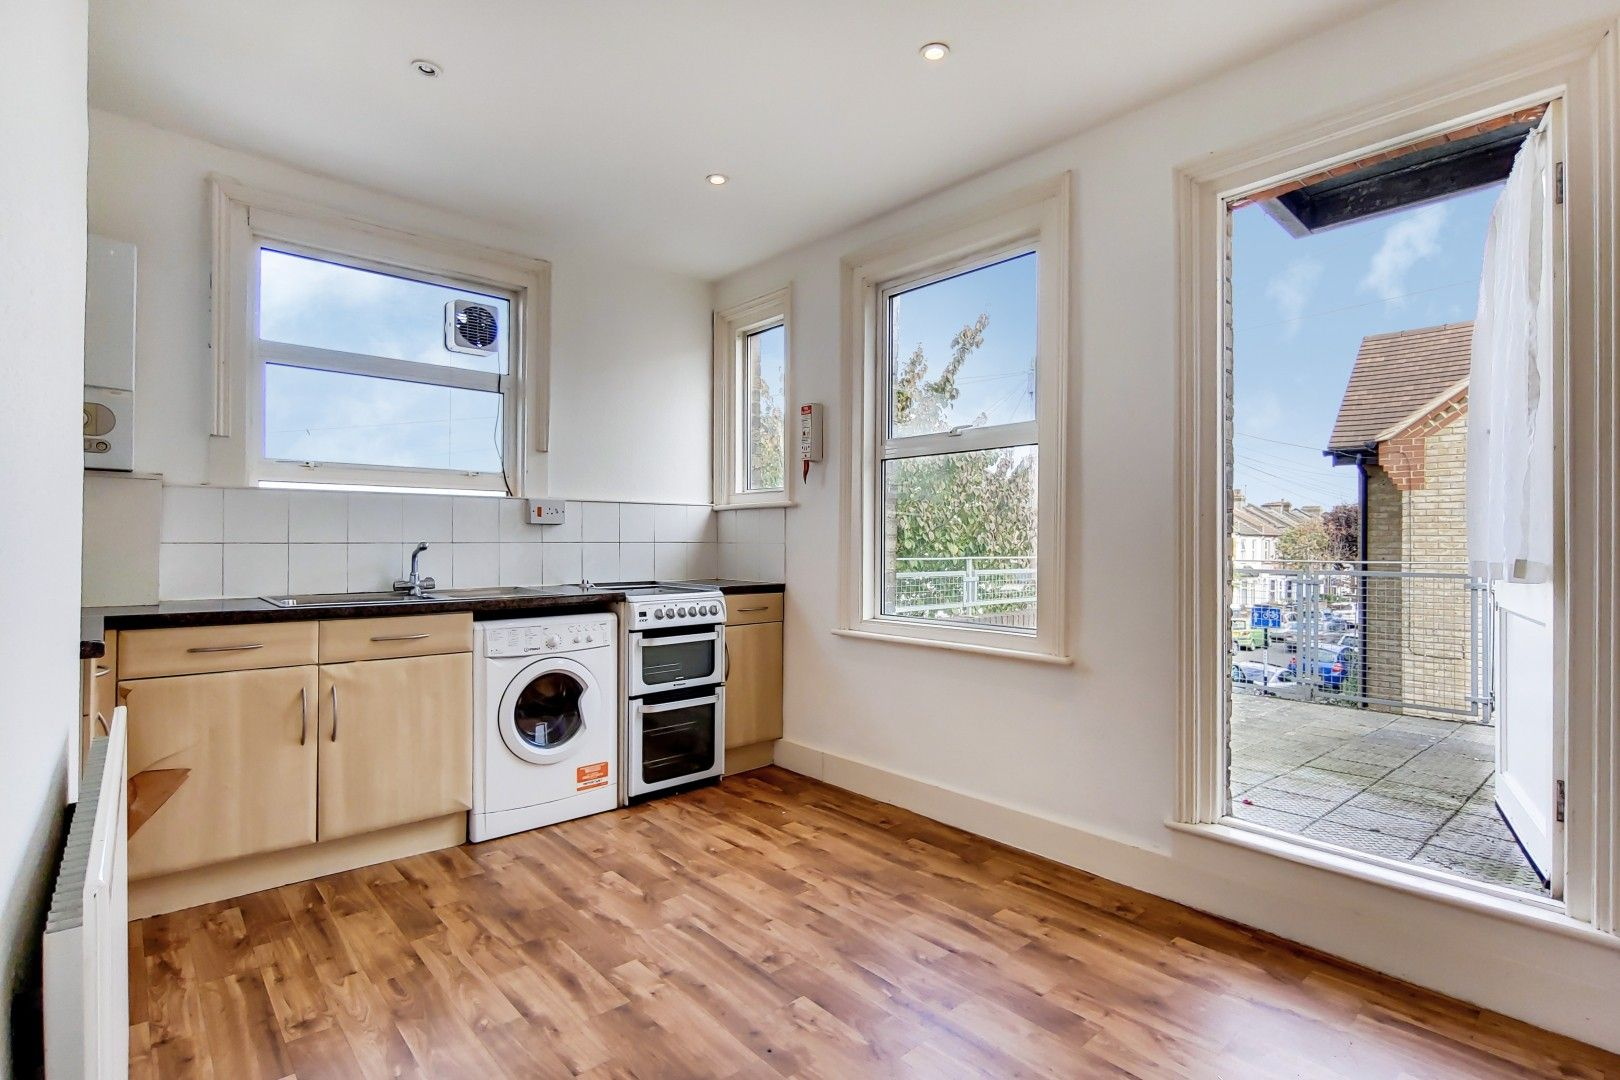 3 bed flat for sale in Portland Road, SE25